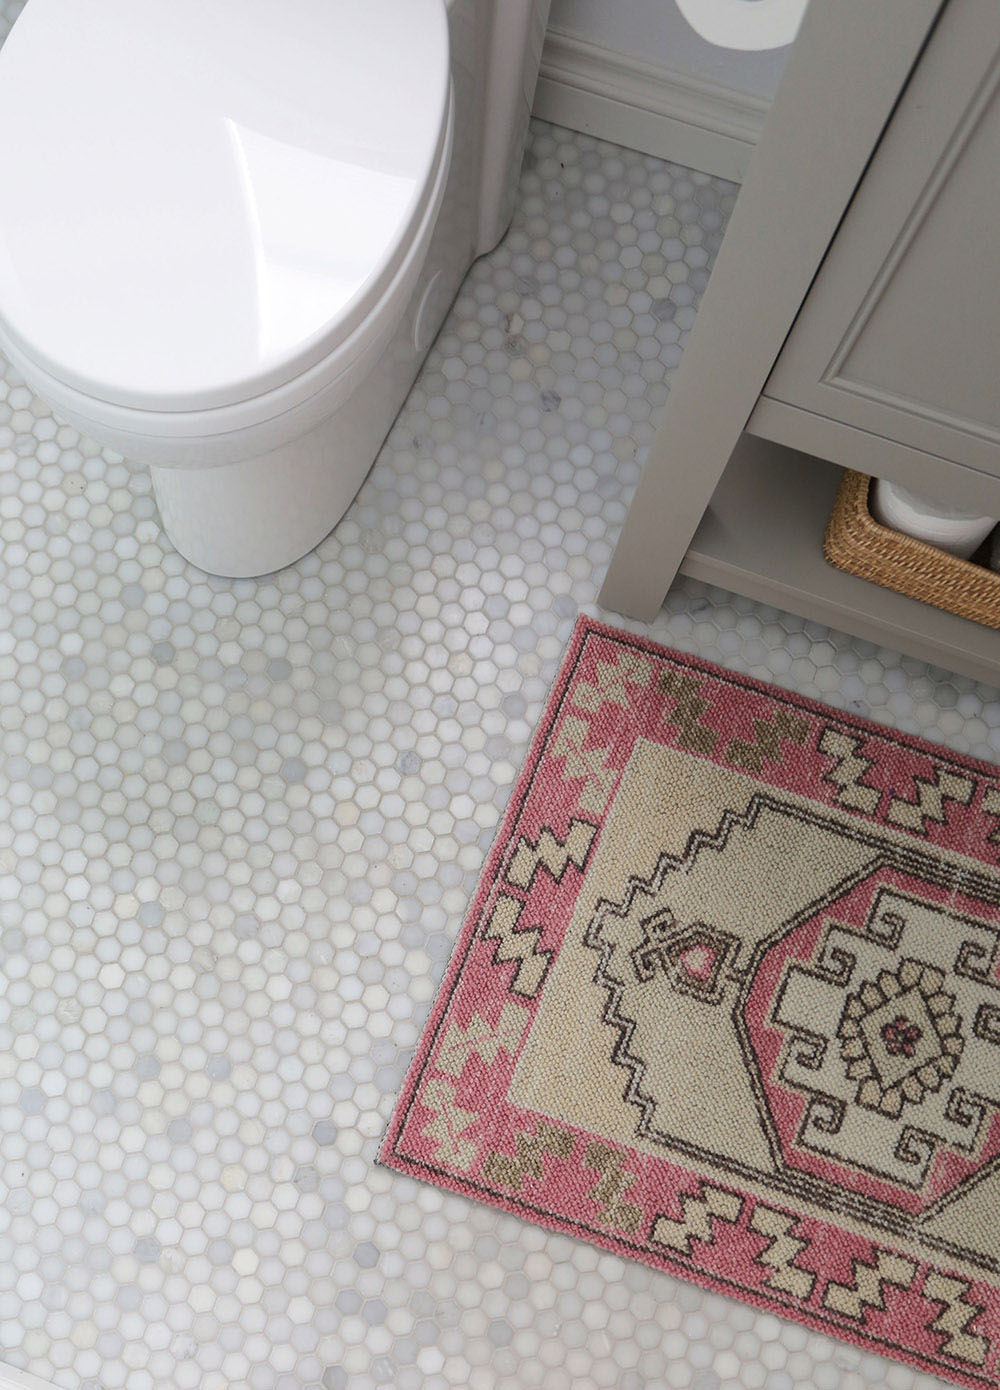 A pink patterned rug sitting on a white hexagon tile floor.